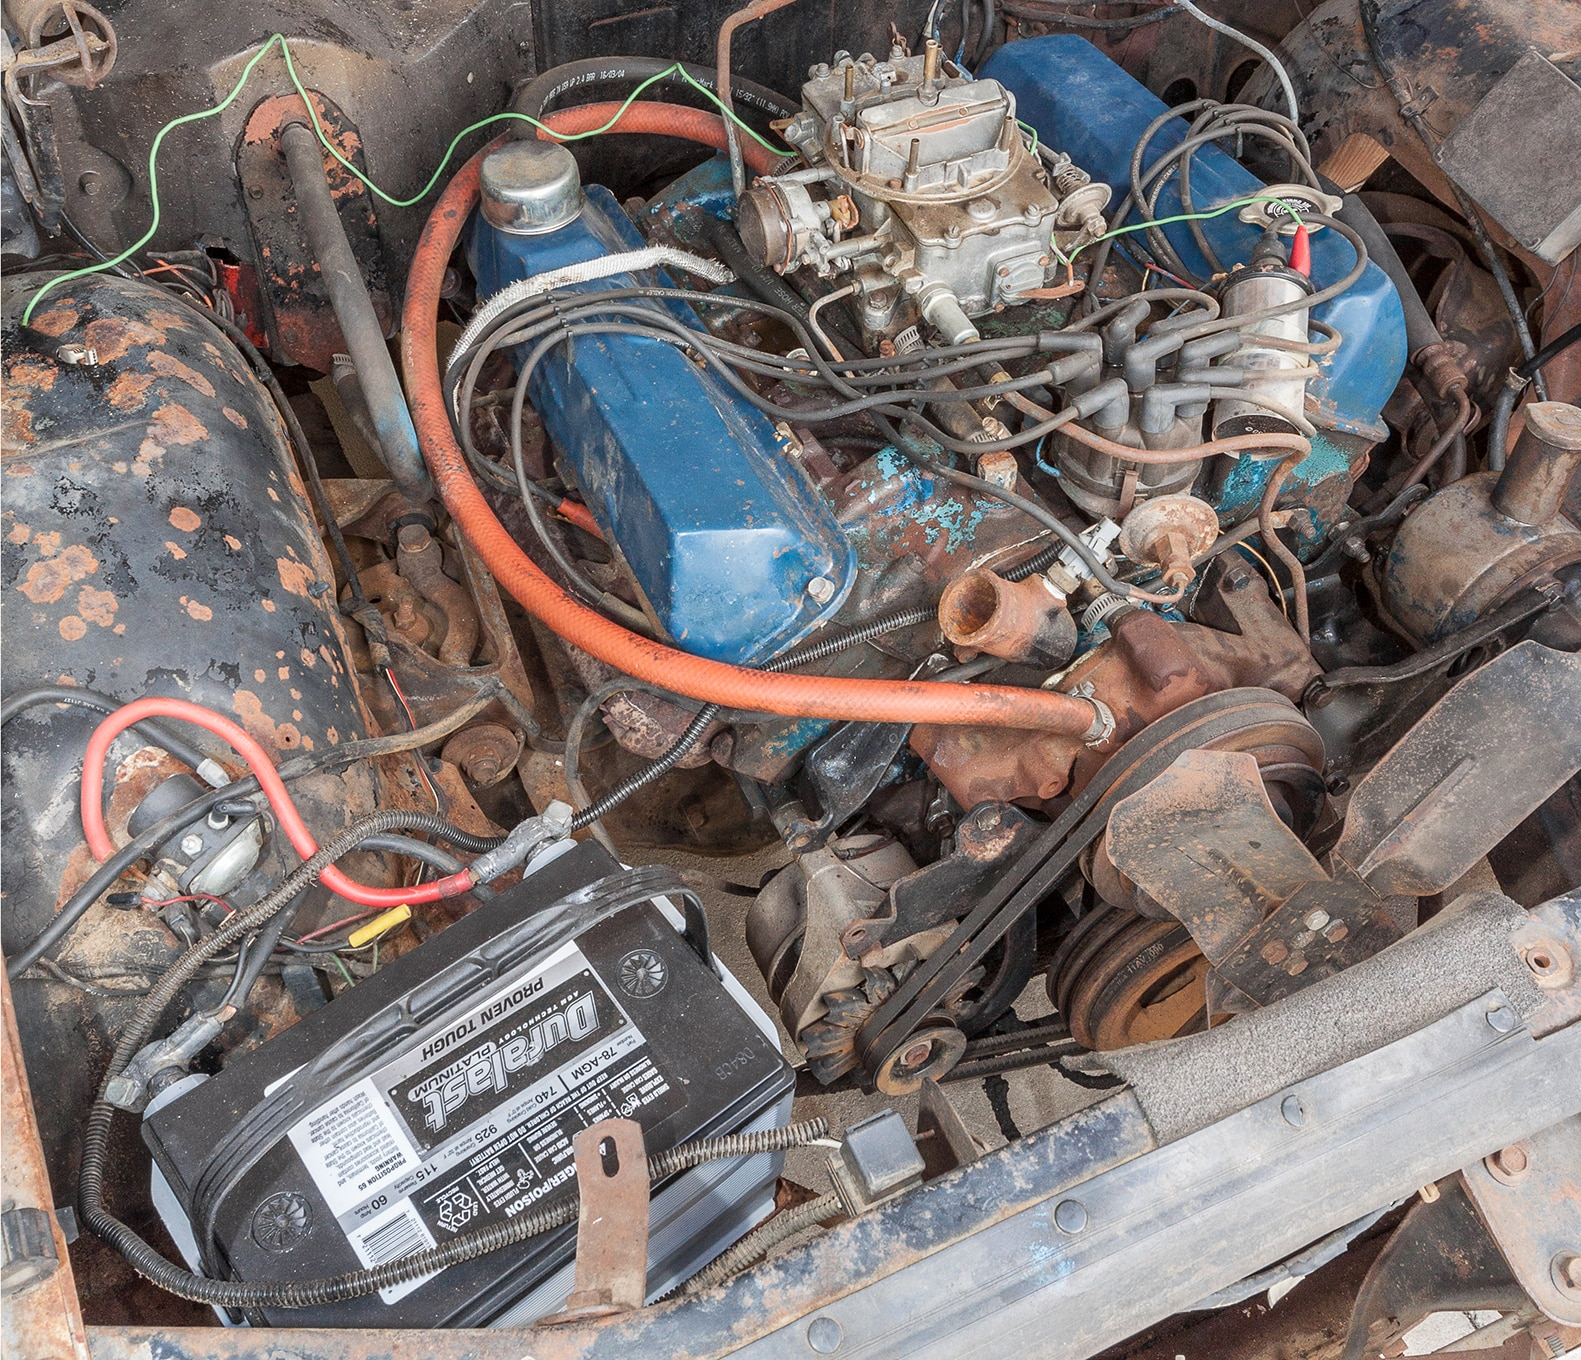 Ford 2g Alternator Wiring How To Install A High Output Ford 3g Alternator Into Older